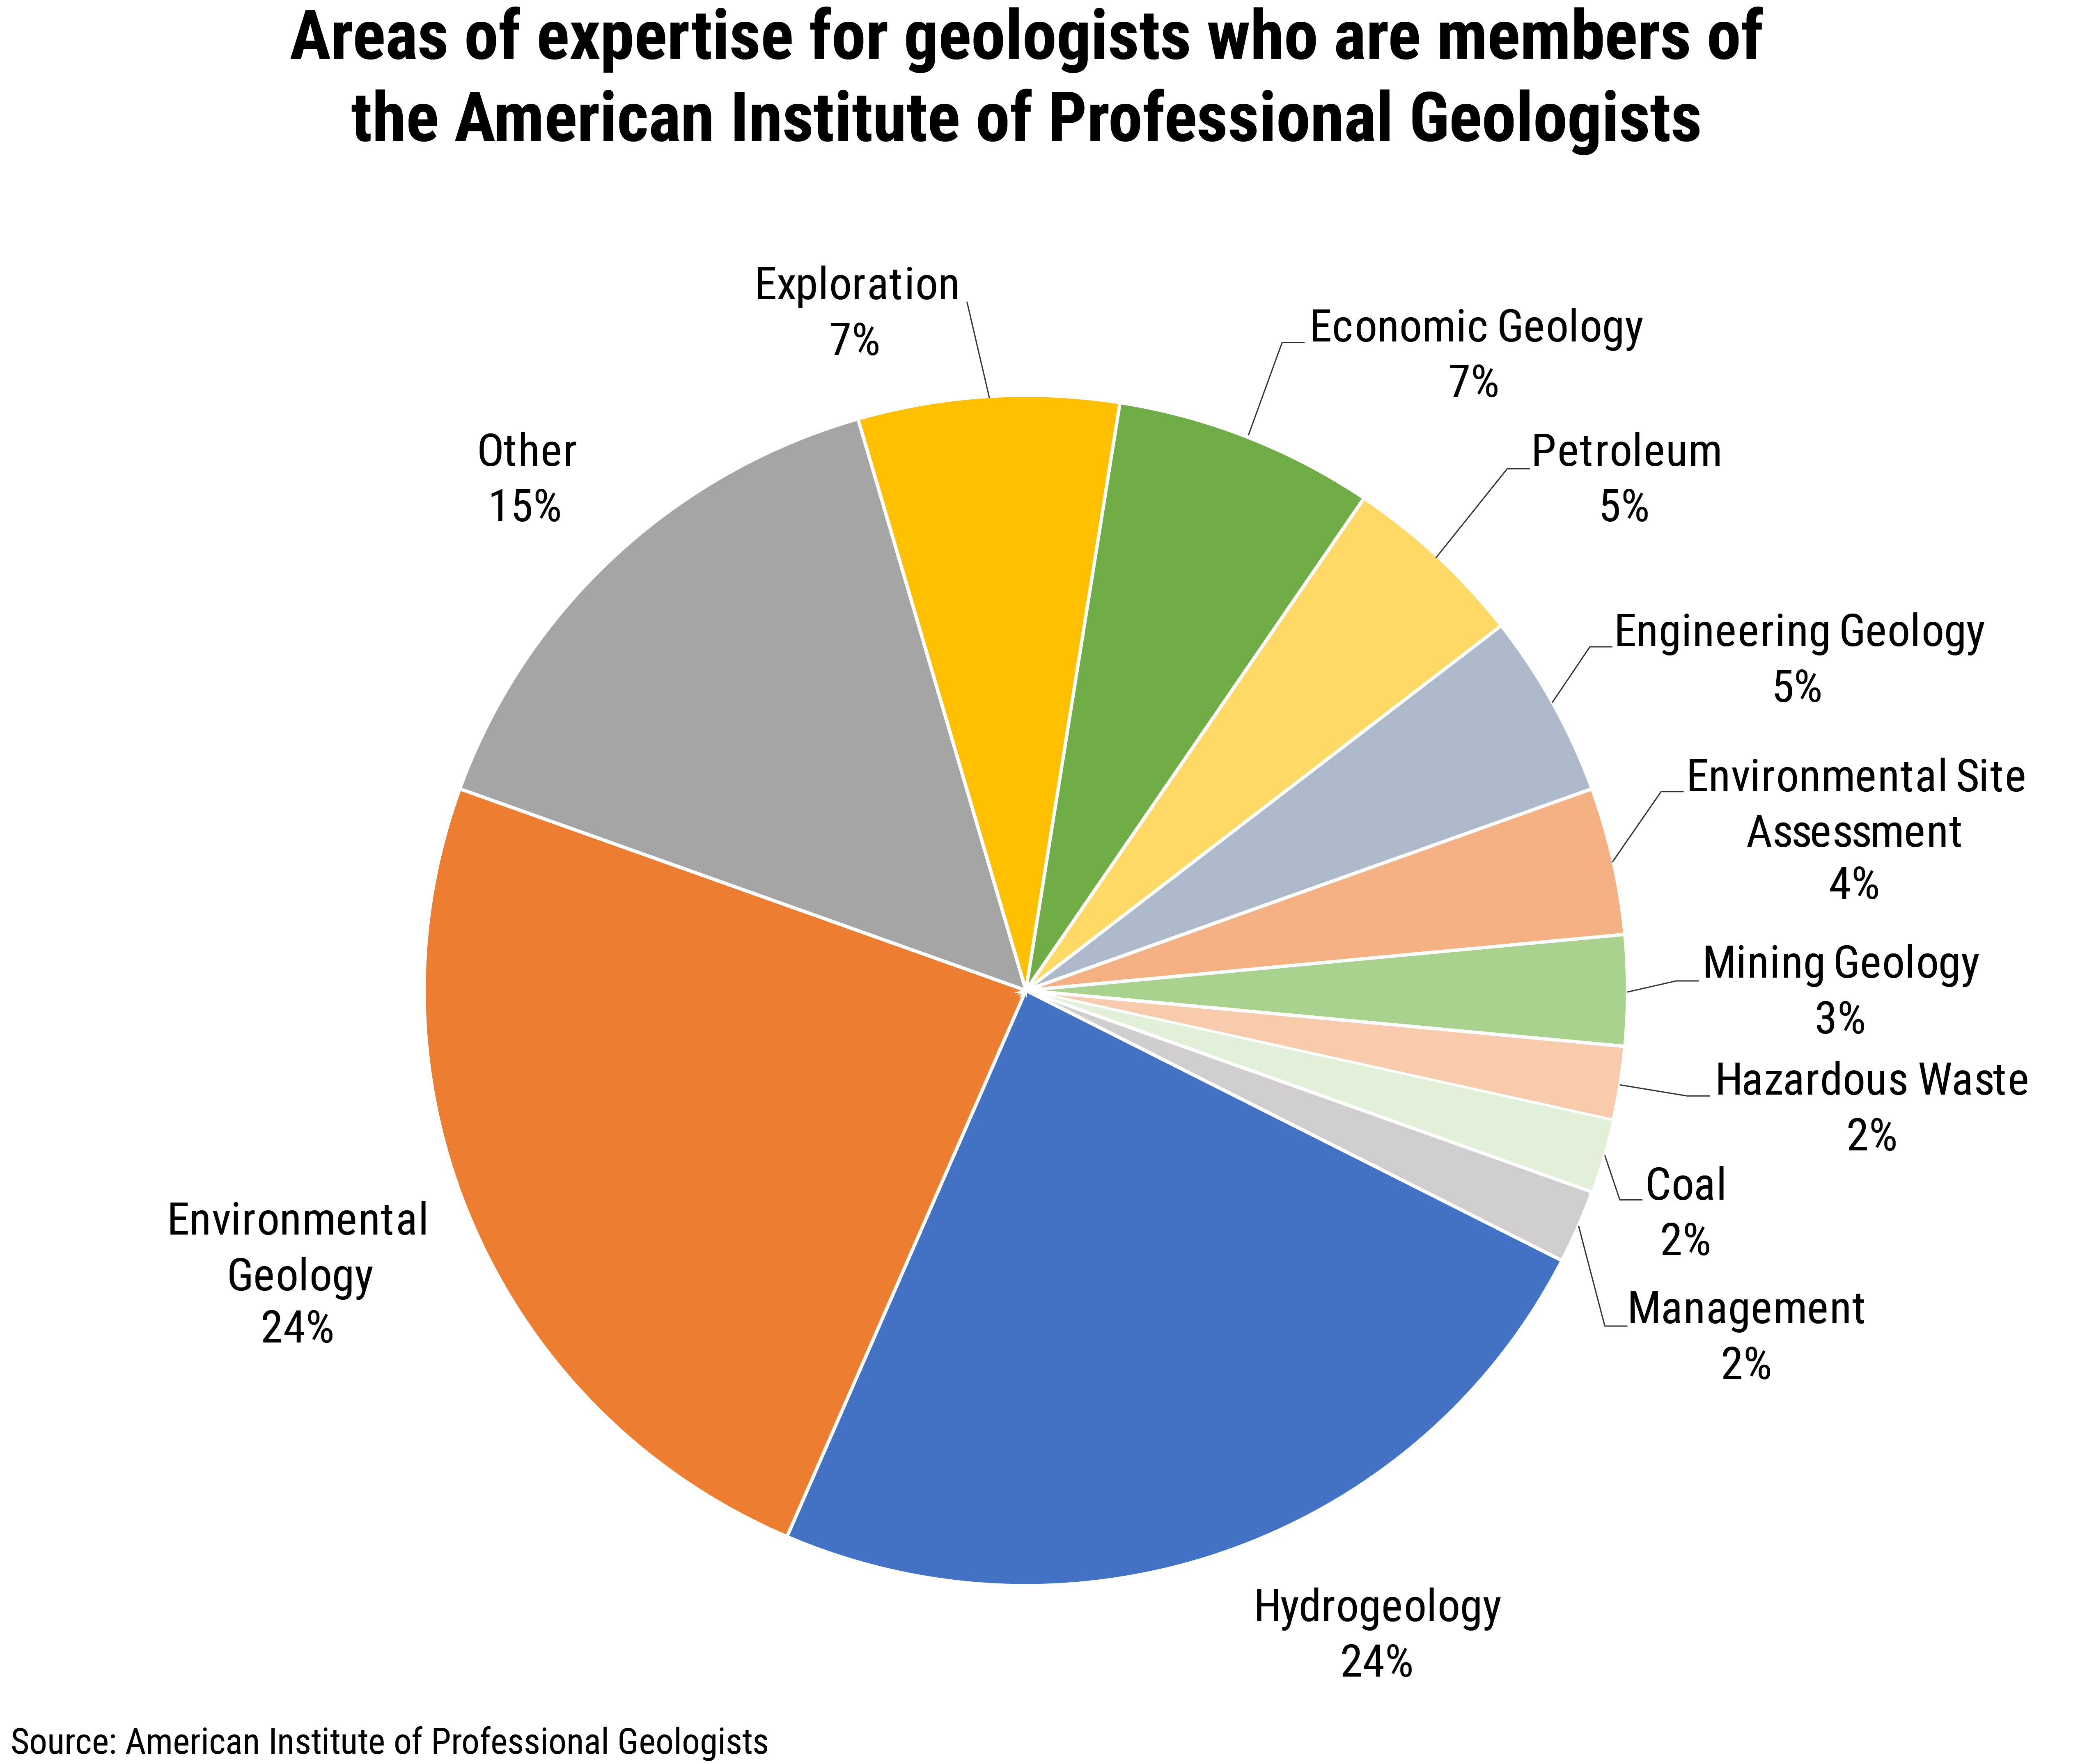 FS_2019-001 chart 1: Areas of expertise for geologists who are members of the American Institute of Professional Geologists